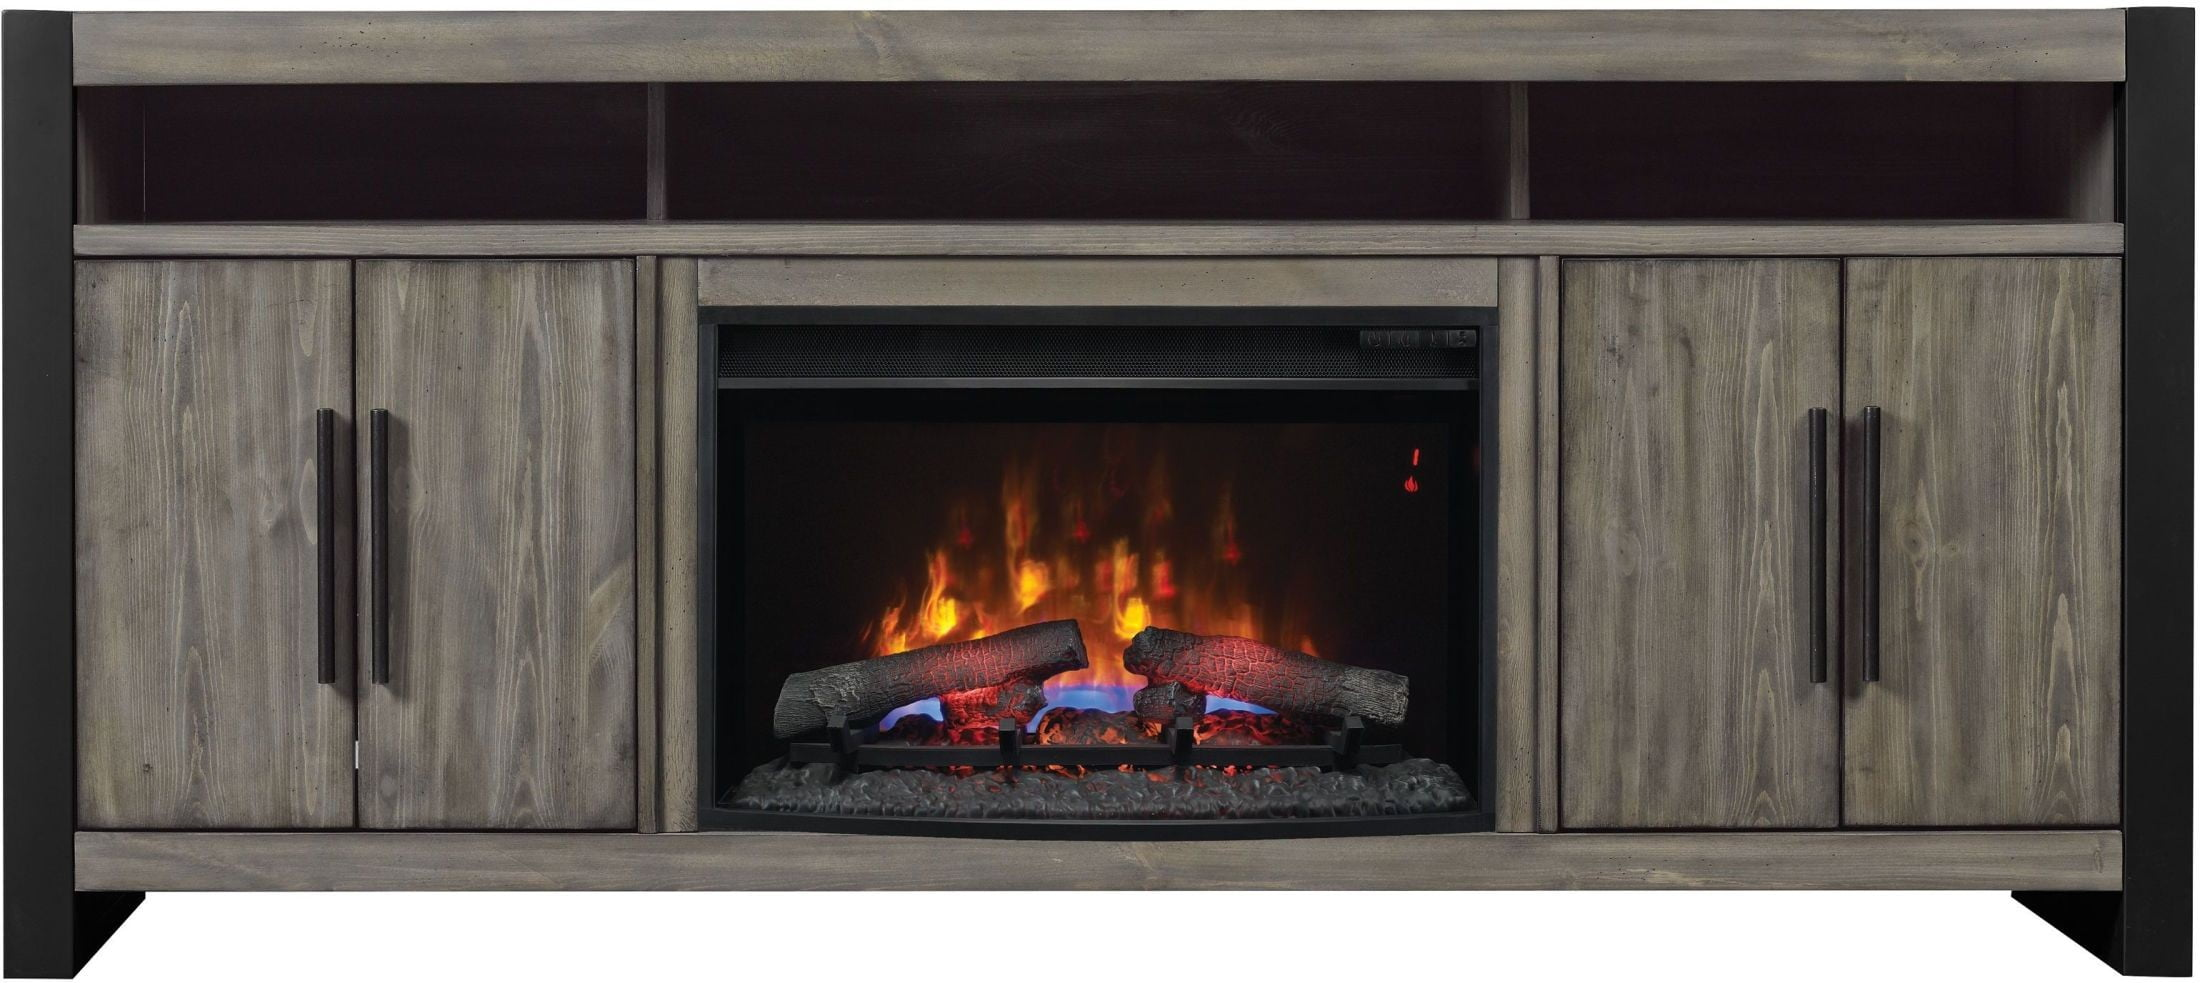 Classicflame Spanish Gray Costa Mesa Tv Stand With 26 Electric Fireplace From Twin Star